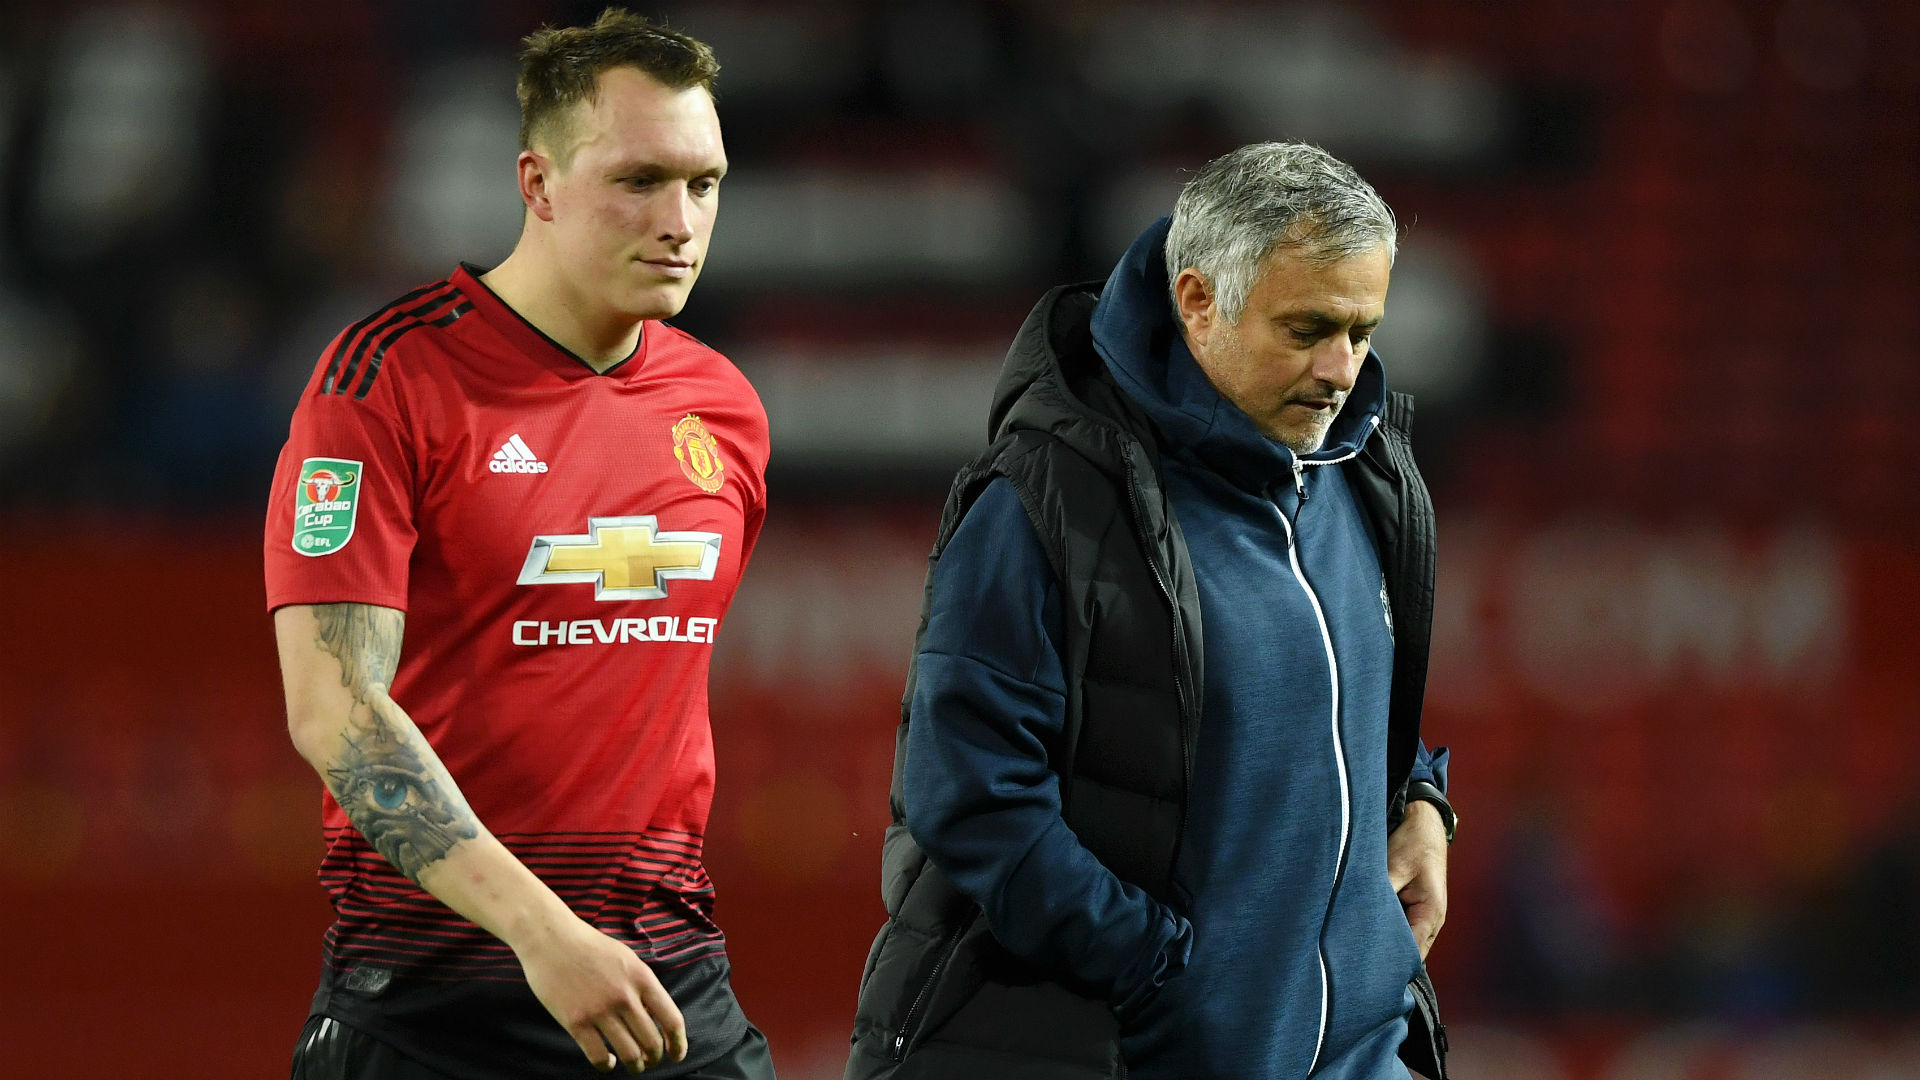 I knew we'd be in trouble with Jones on penalties – Mourinho